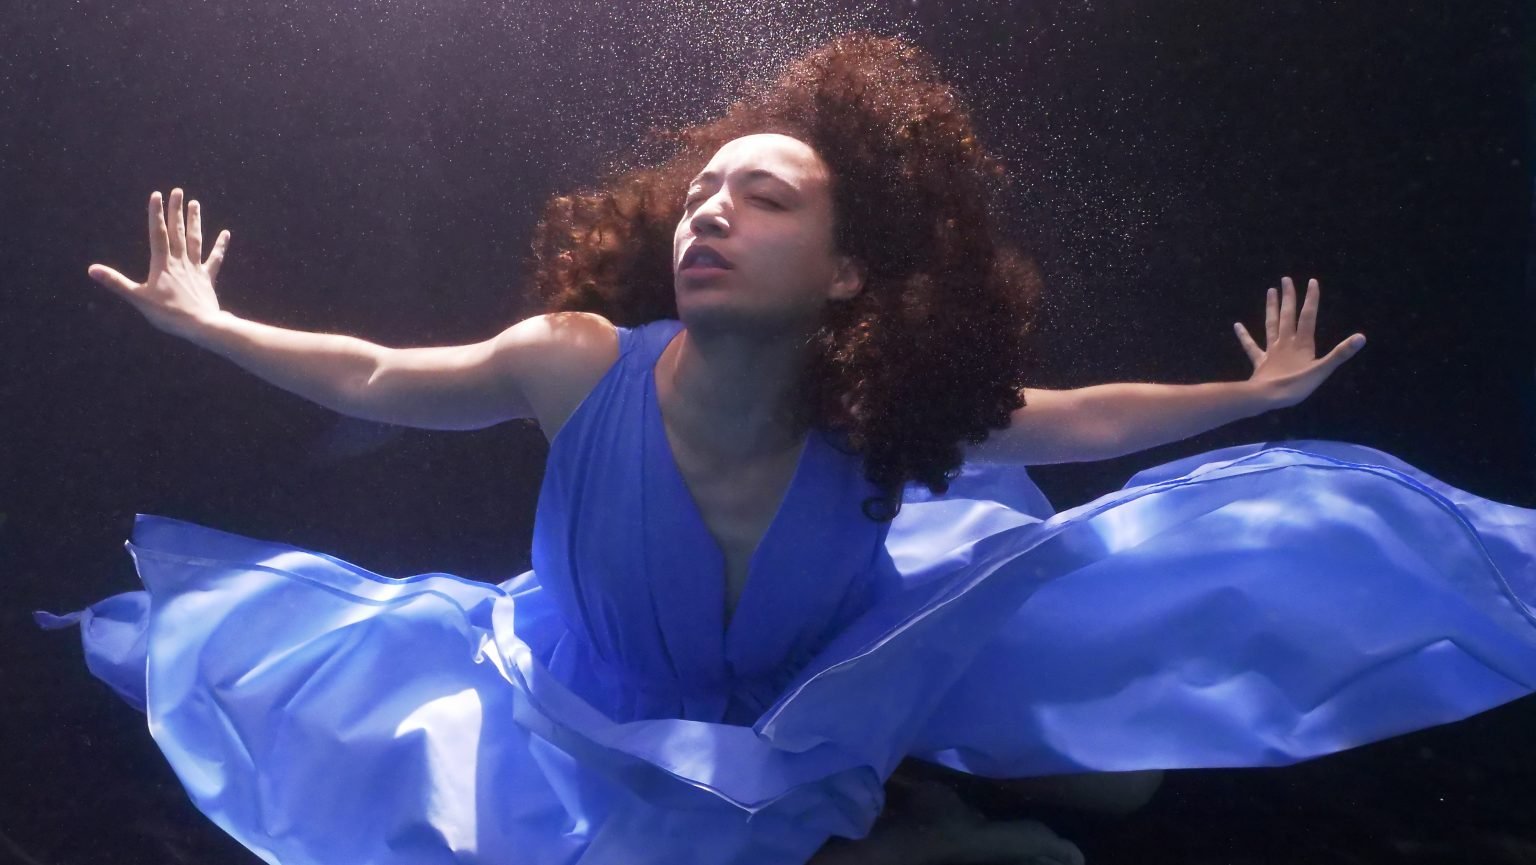 A woman in a blue dress underwater with her arms stretched out